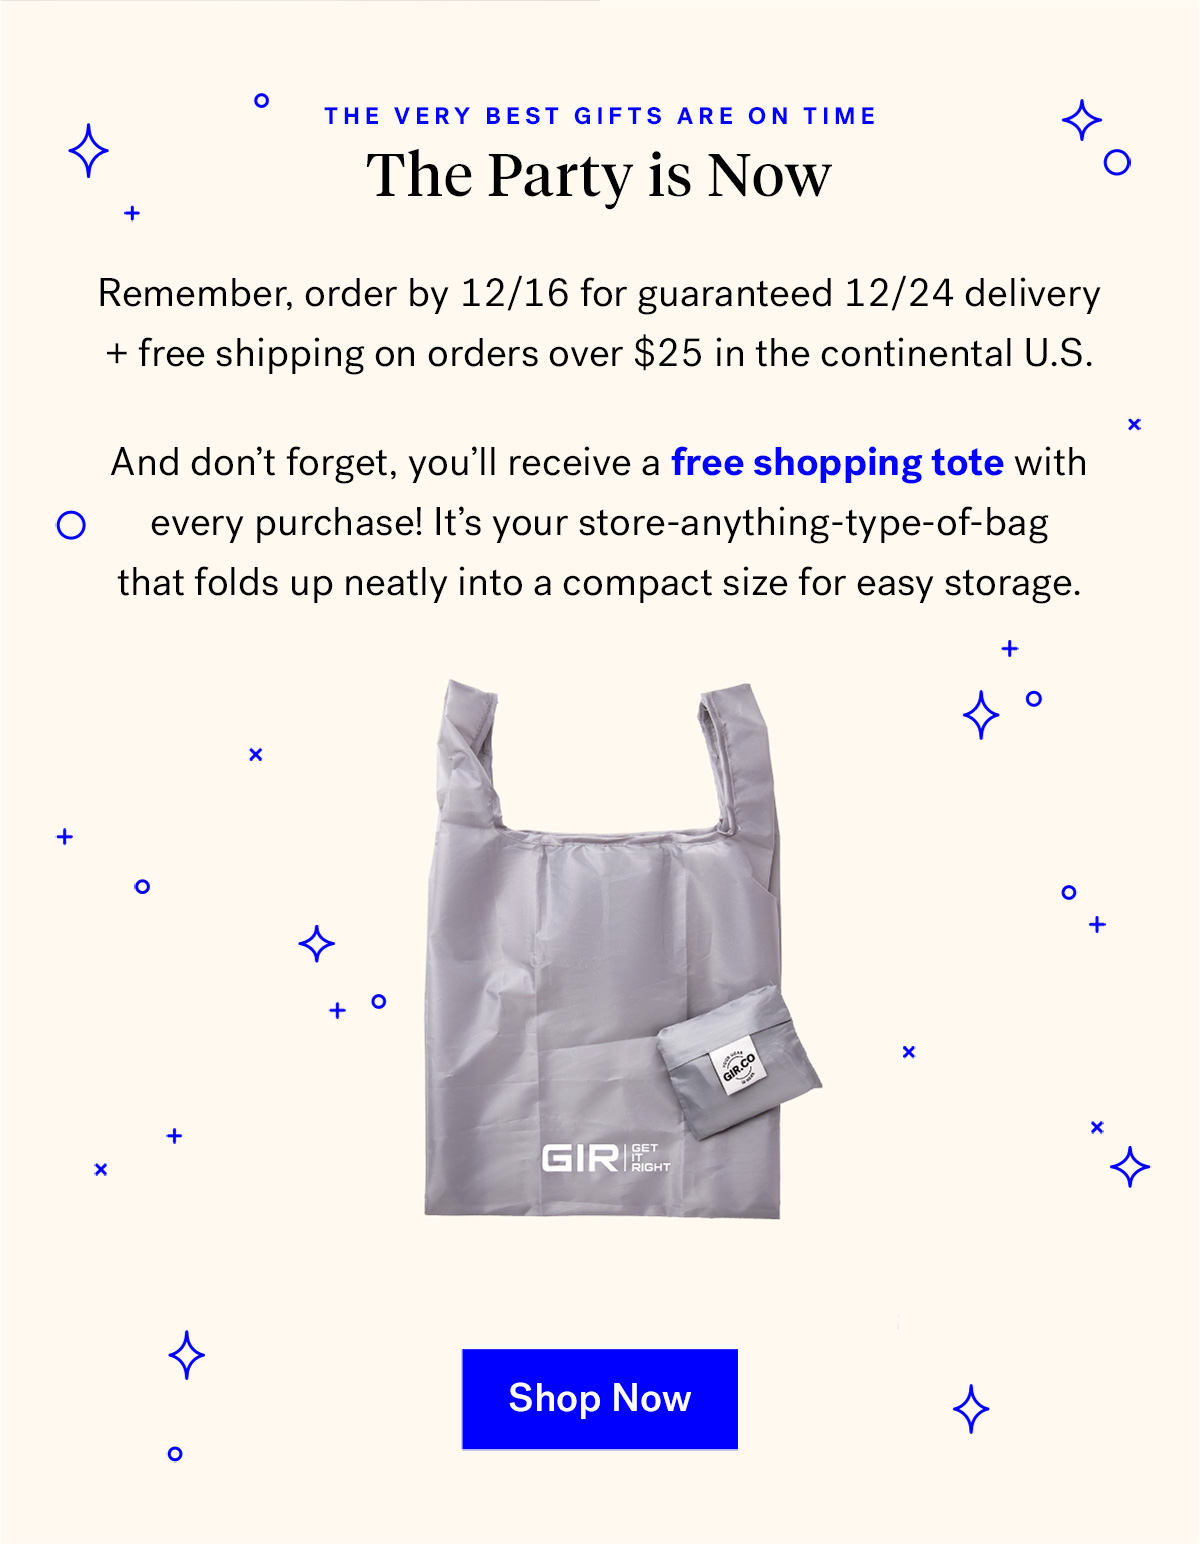 The very best gifts are on time